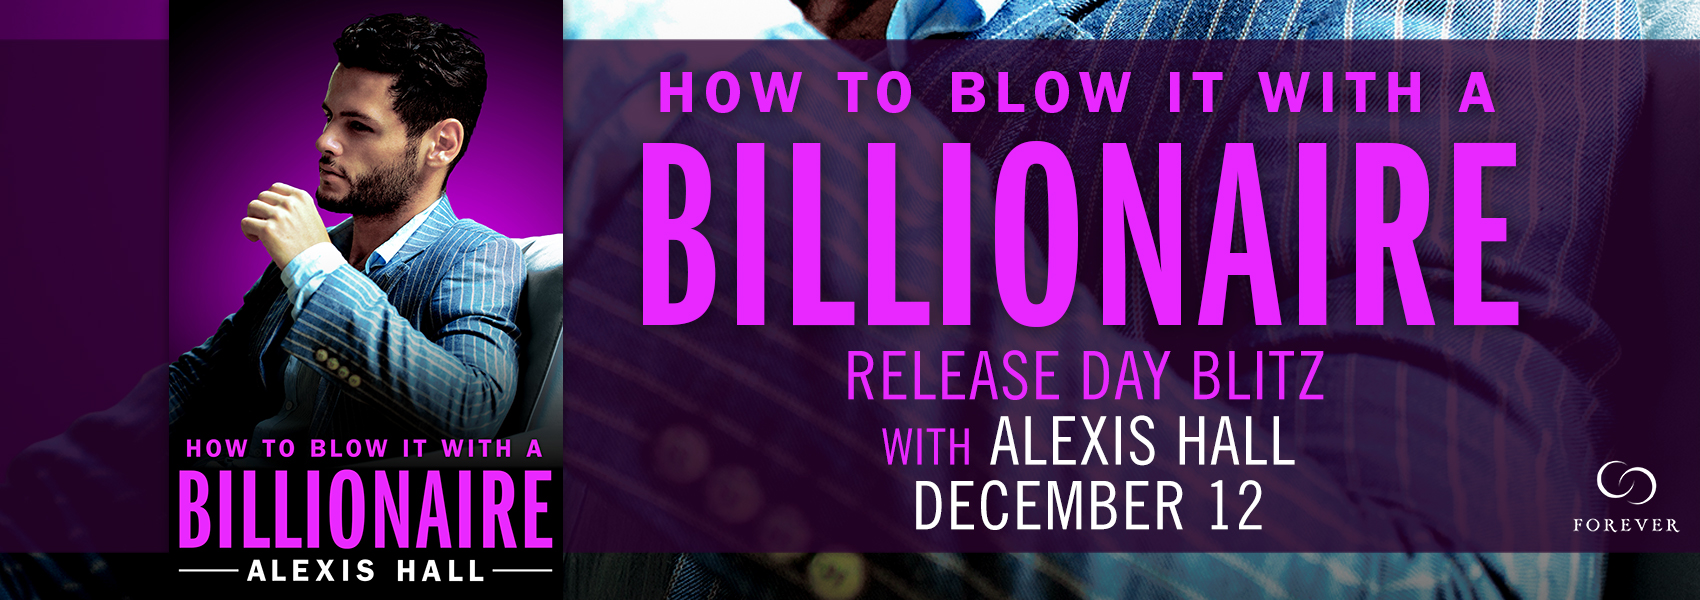 Enter to win 1 of 15 free ebook downloads of How to Bang a Billionaire!